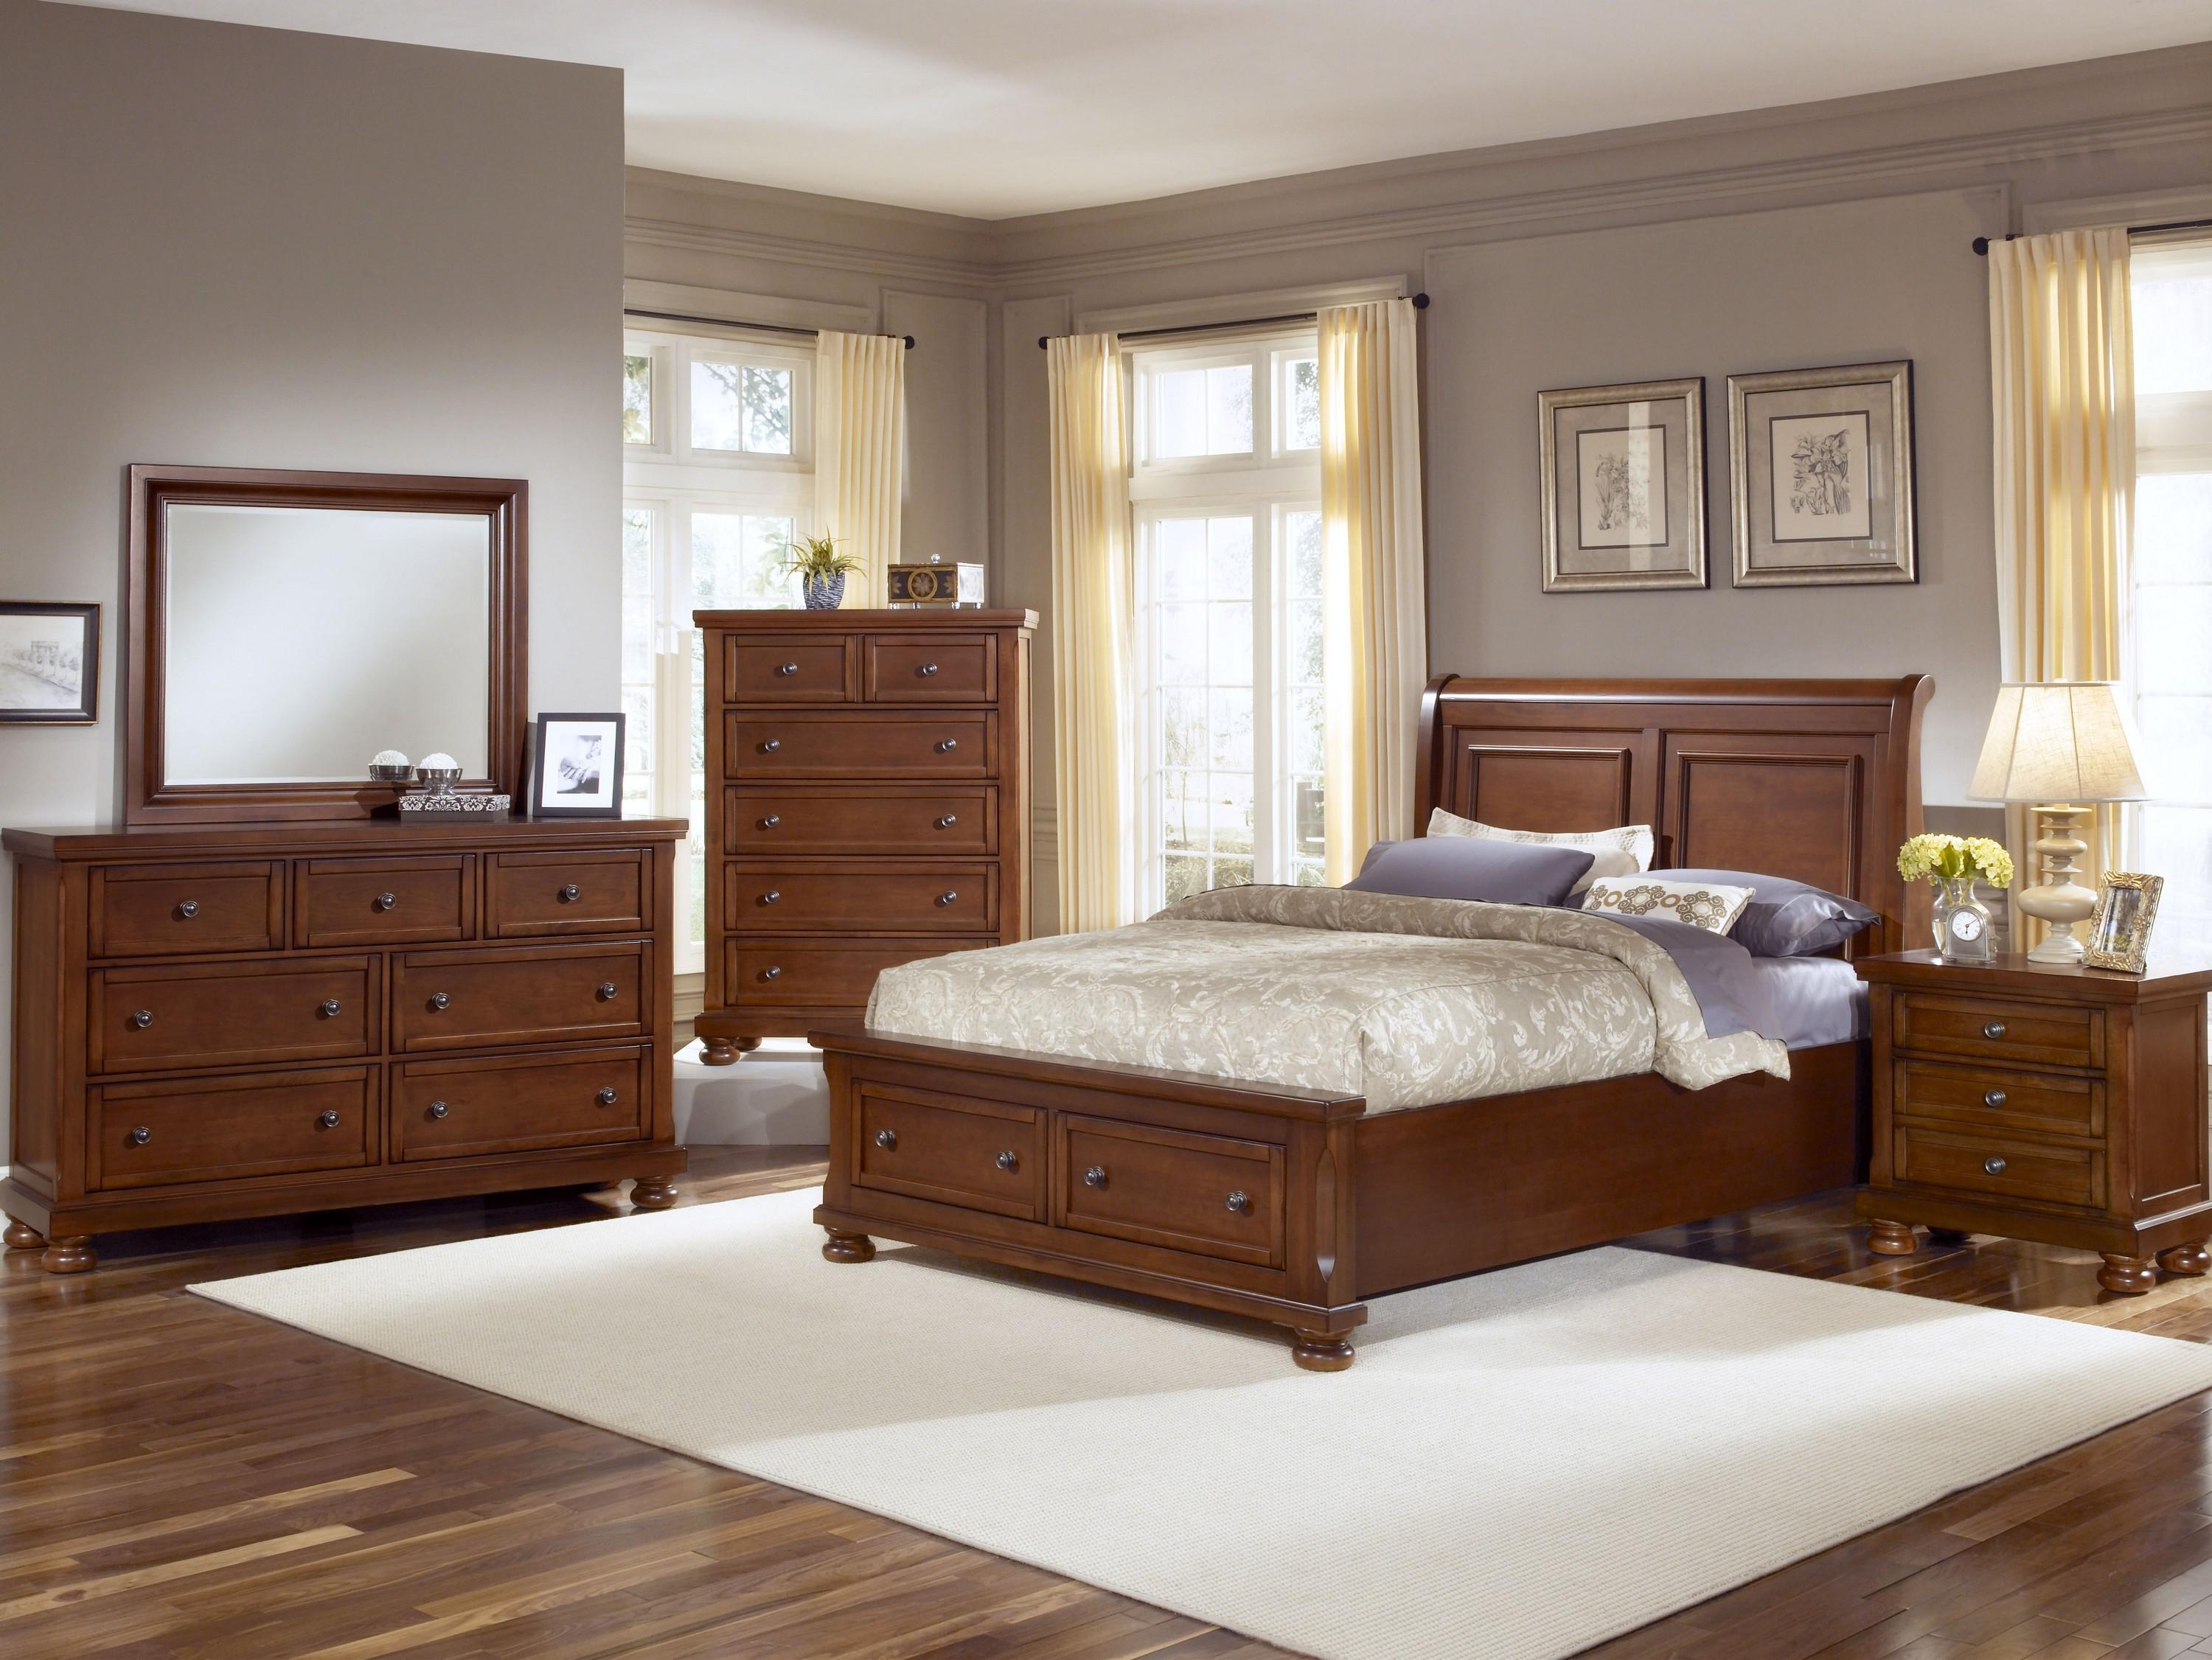 exciting bellefonte hi set modern sturdy bedroom furniture design painted america fininsh wood cherry of wallpaper solid res brown photos